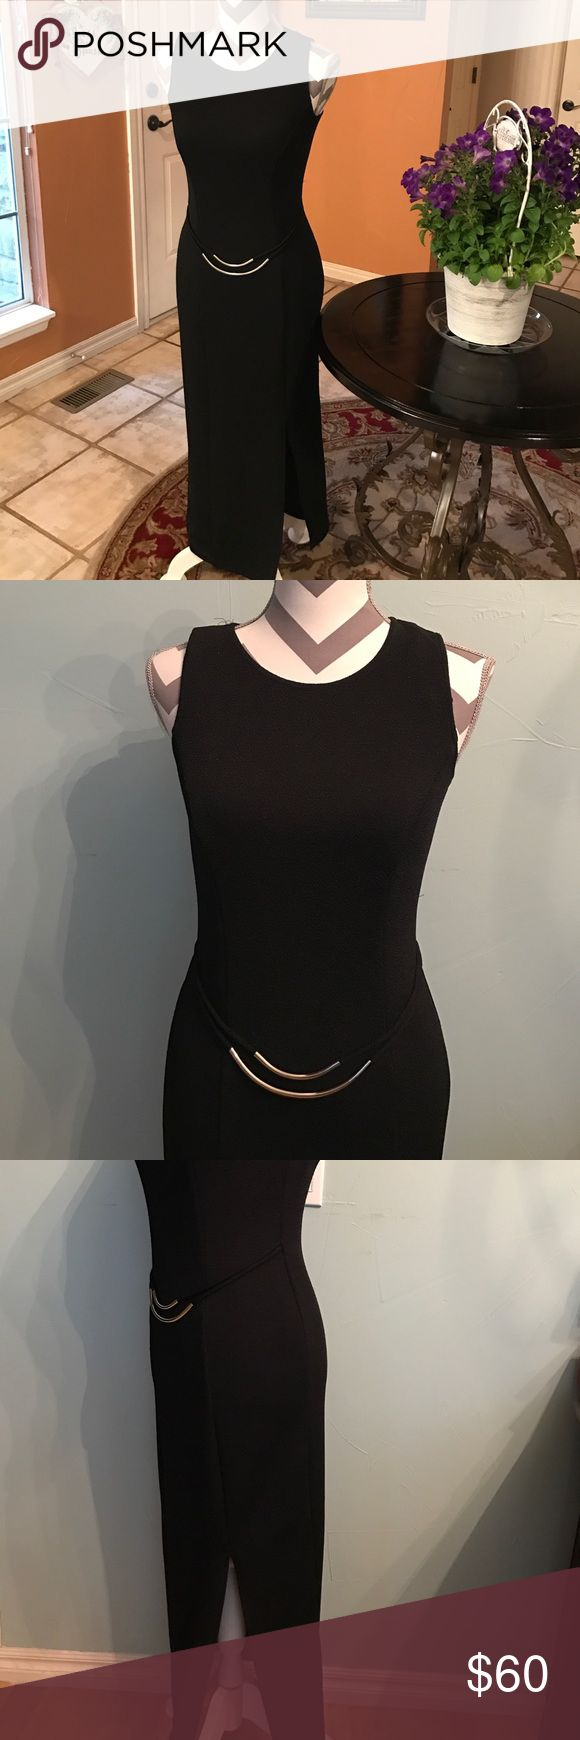 🆕 Maxi black sleeveless Scarlett dress 🆕 Maxi black sleeveless Scarlett dress              With gold accent in waist                                             Length 50 inches; with slit the length of slit 17 inches; bust line 32 inches NO TRADE! Kindly check more Bags, Shoes,tops,skirts,dress etc. Waiting for you!  Perfect condition!!!! Scarlett Dresses Maxi